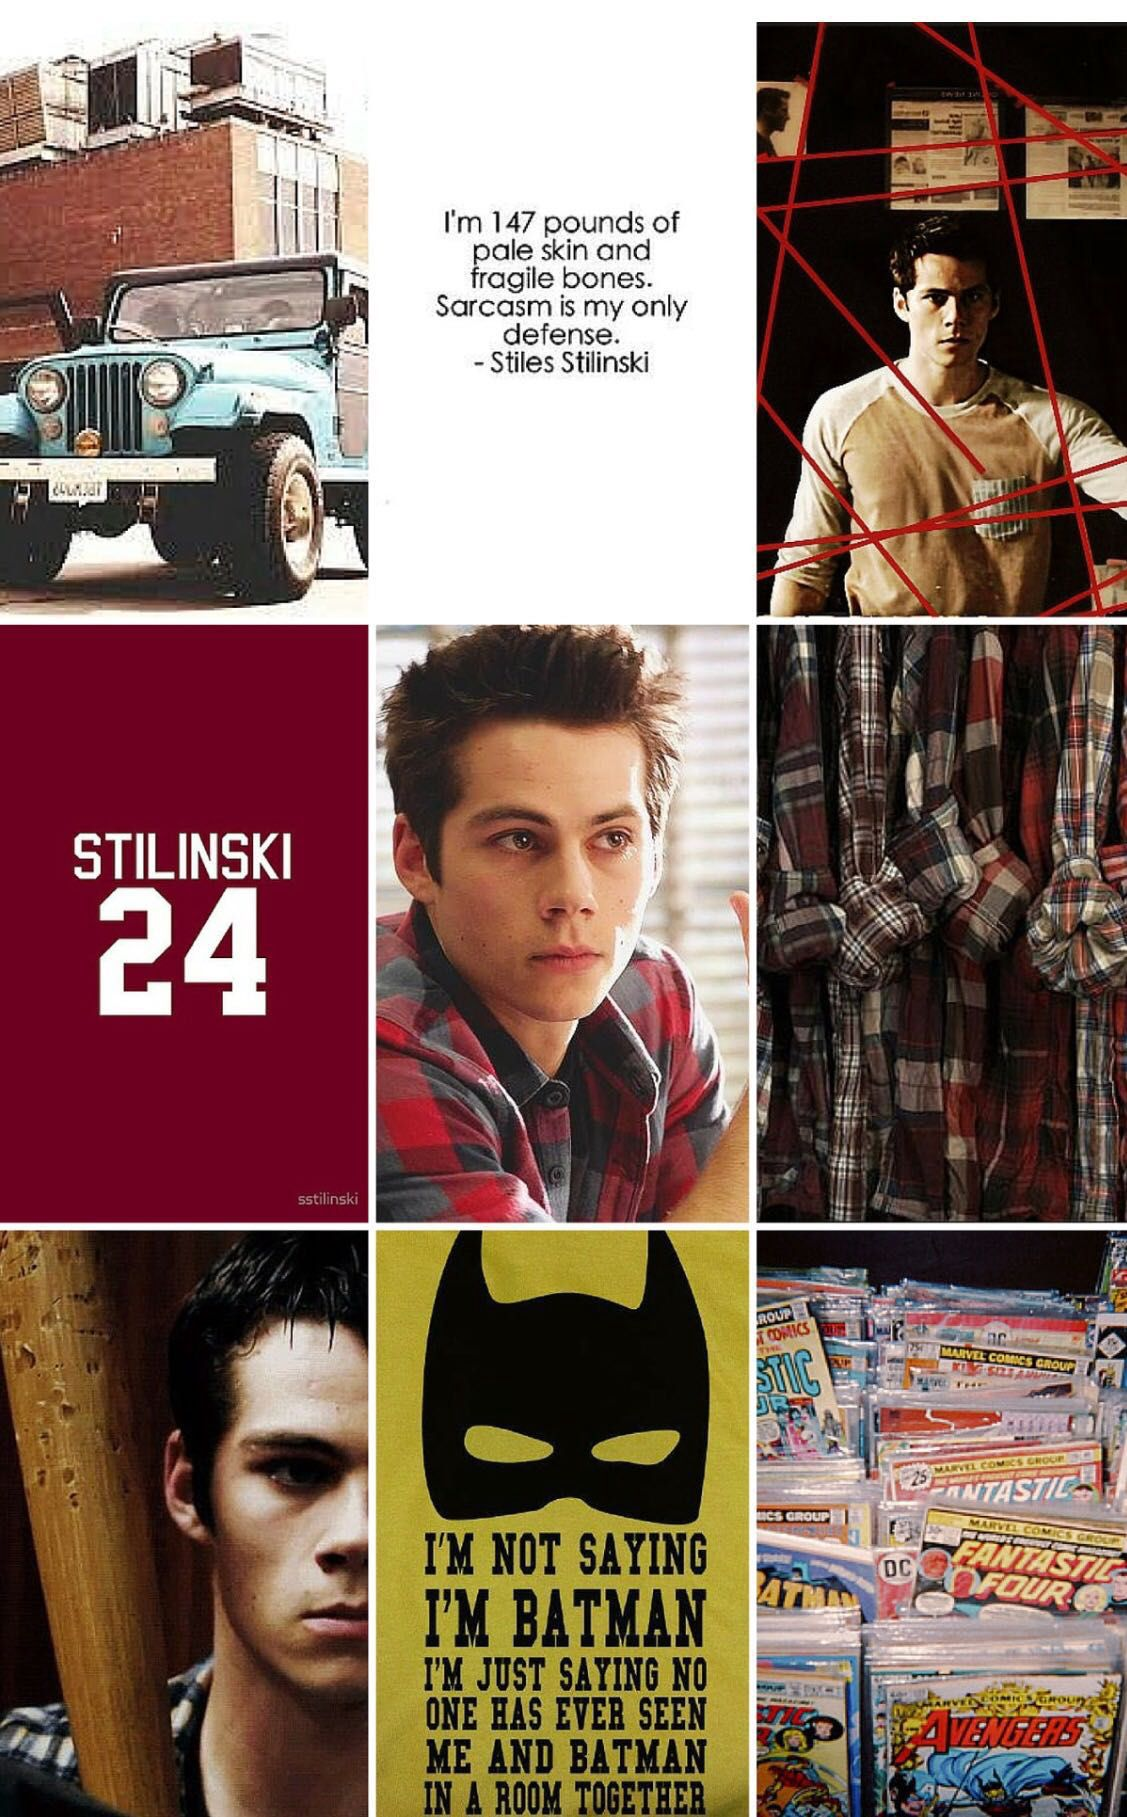 Dating stiles would include